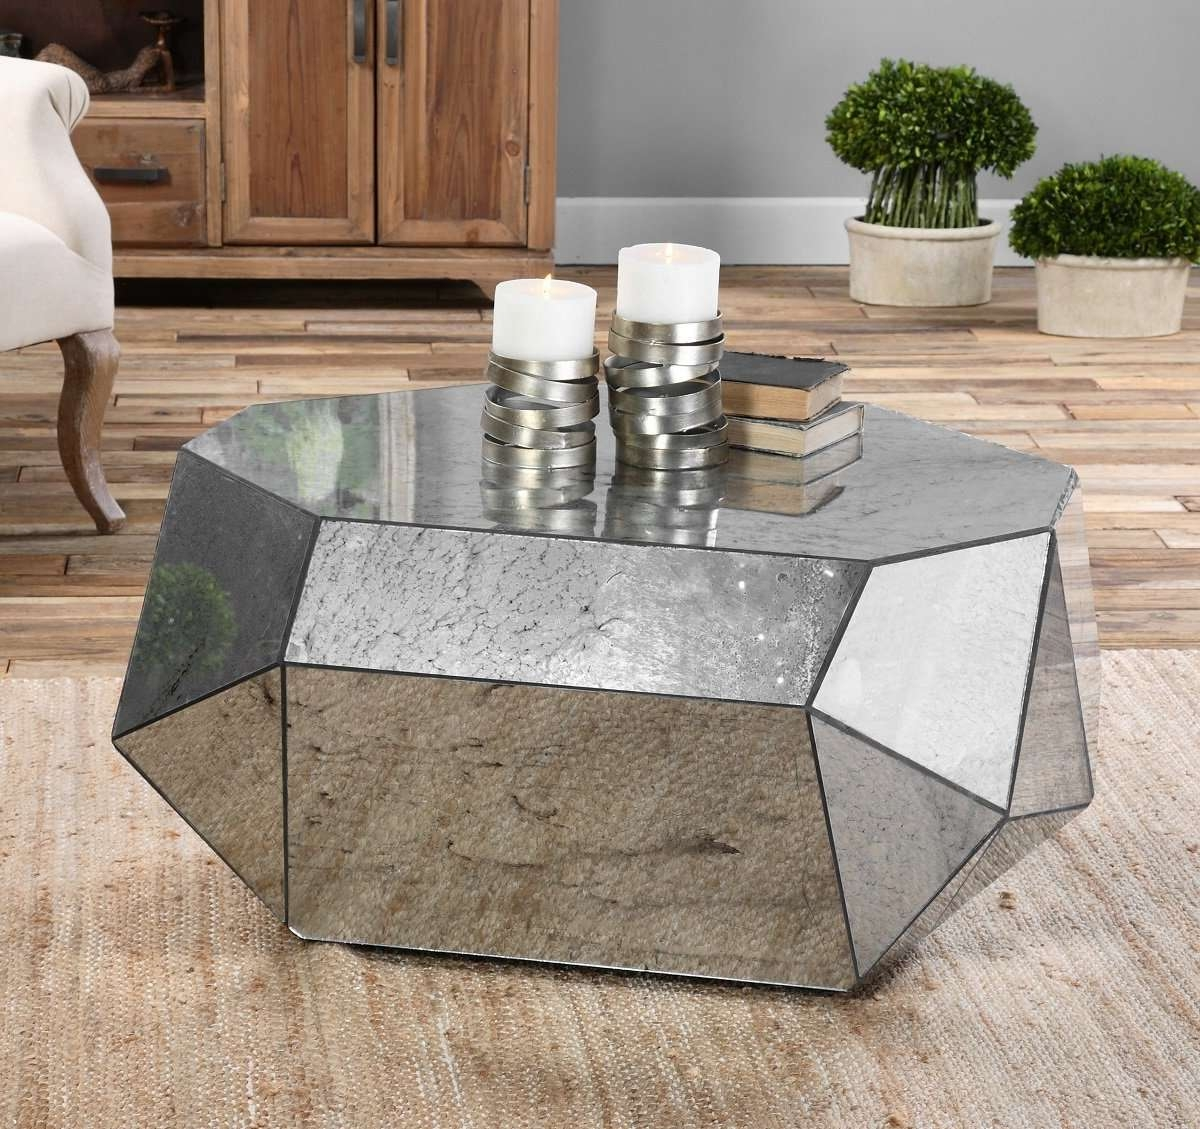 Latest Mirrored Coffee Tables Inside Mirrored Coffee Table Hazards — The Wooden Houses (View 9 of 20)